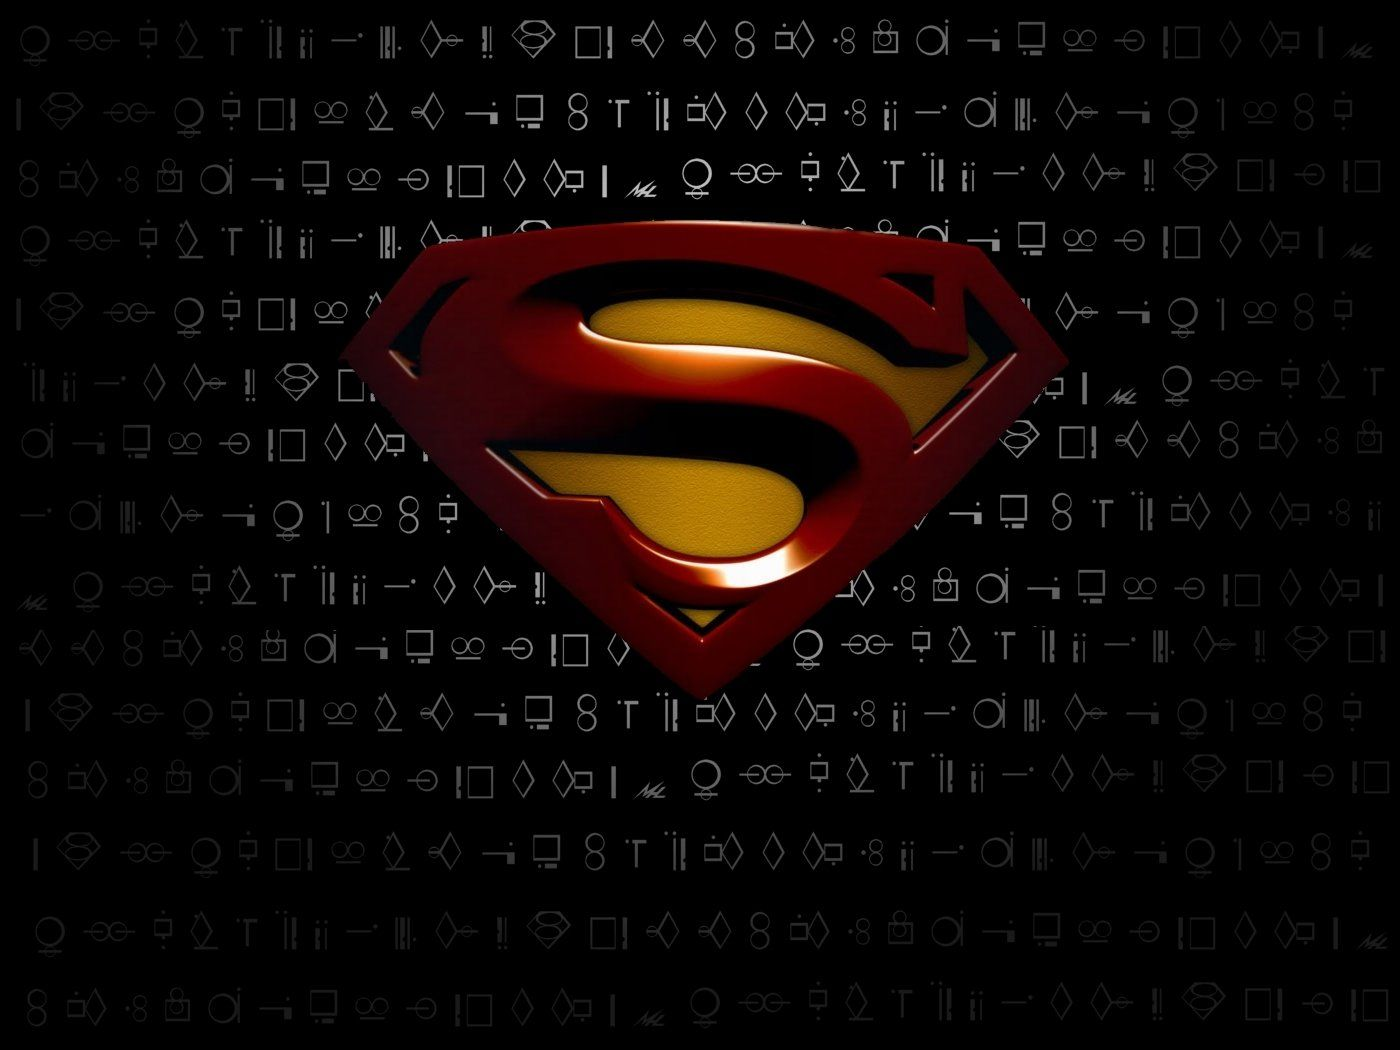 download superman 3d live wallpaper apk 1.5 - only in downloadatoz